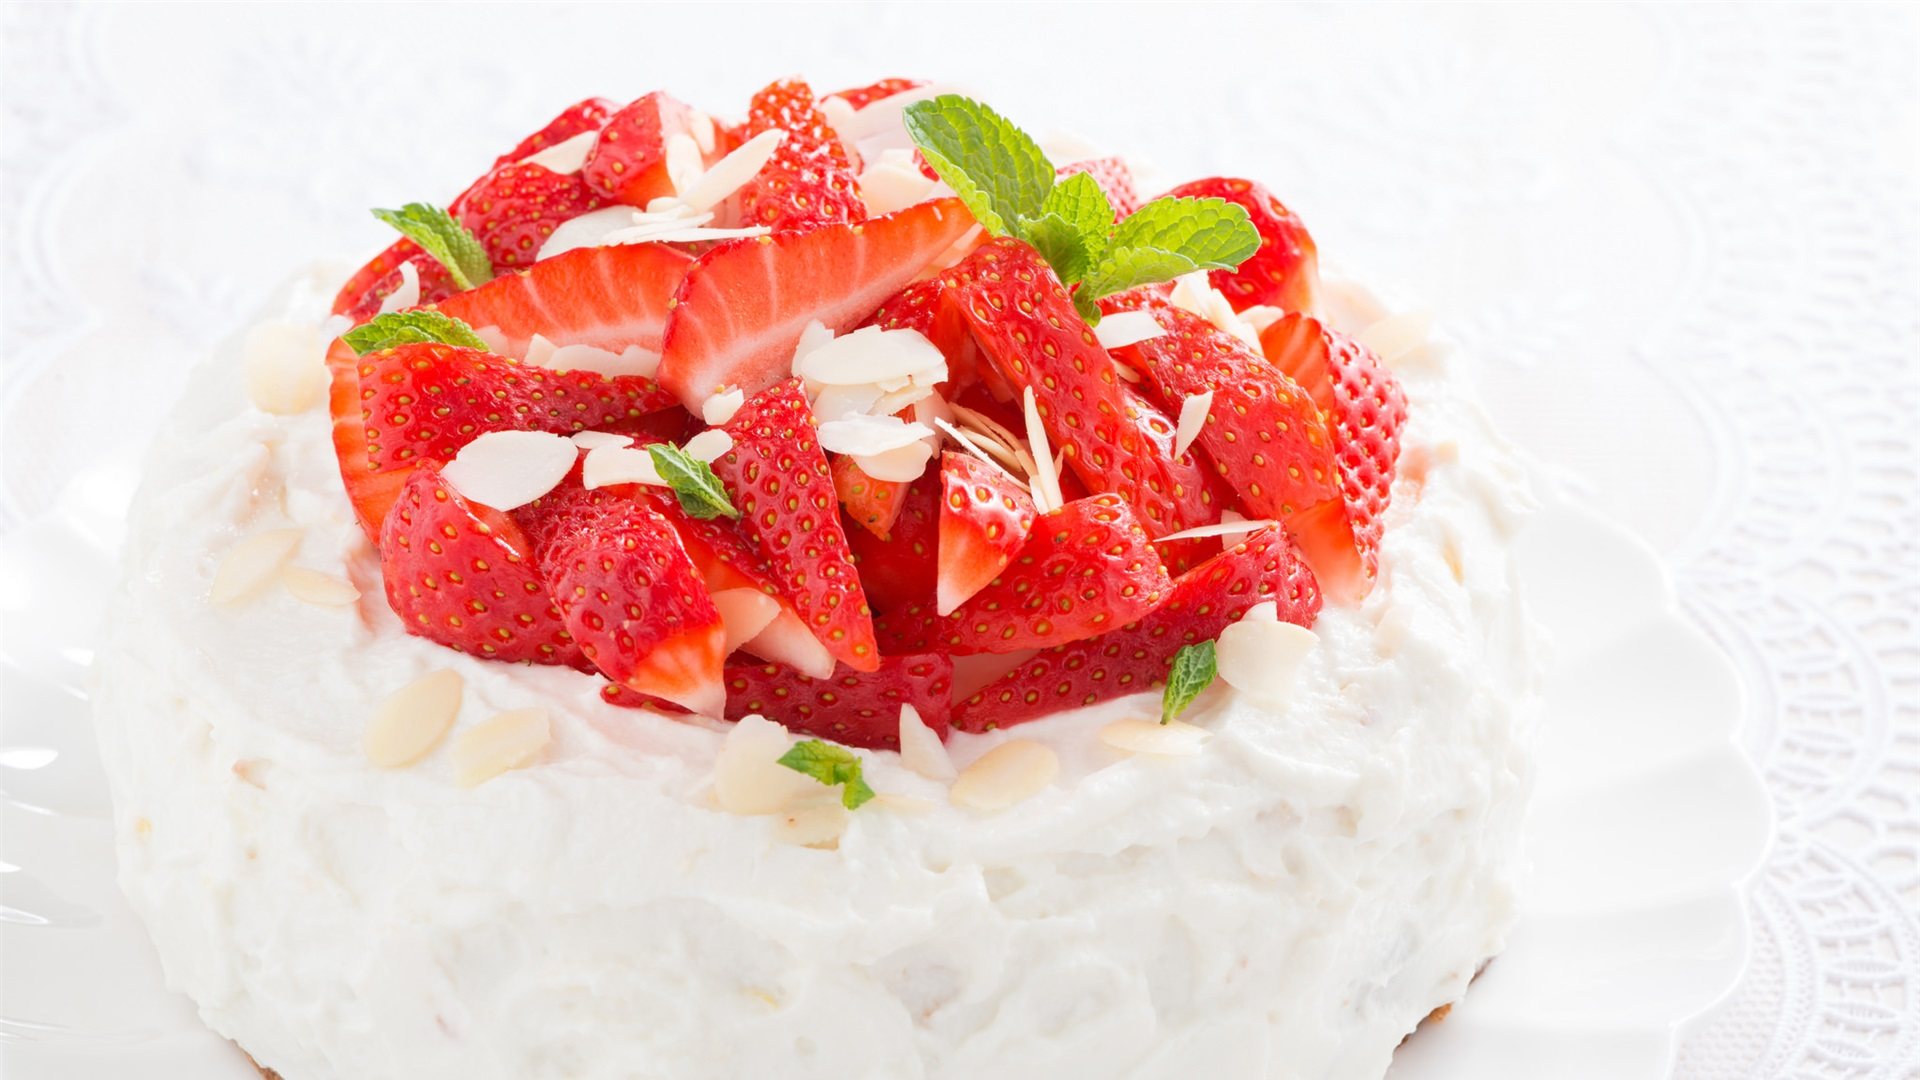 Strawberry Cake Images Download : Strawberry cake, dessert, delicious Wallpaper 1920x1080 ...